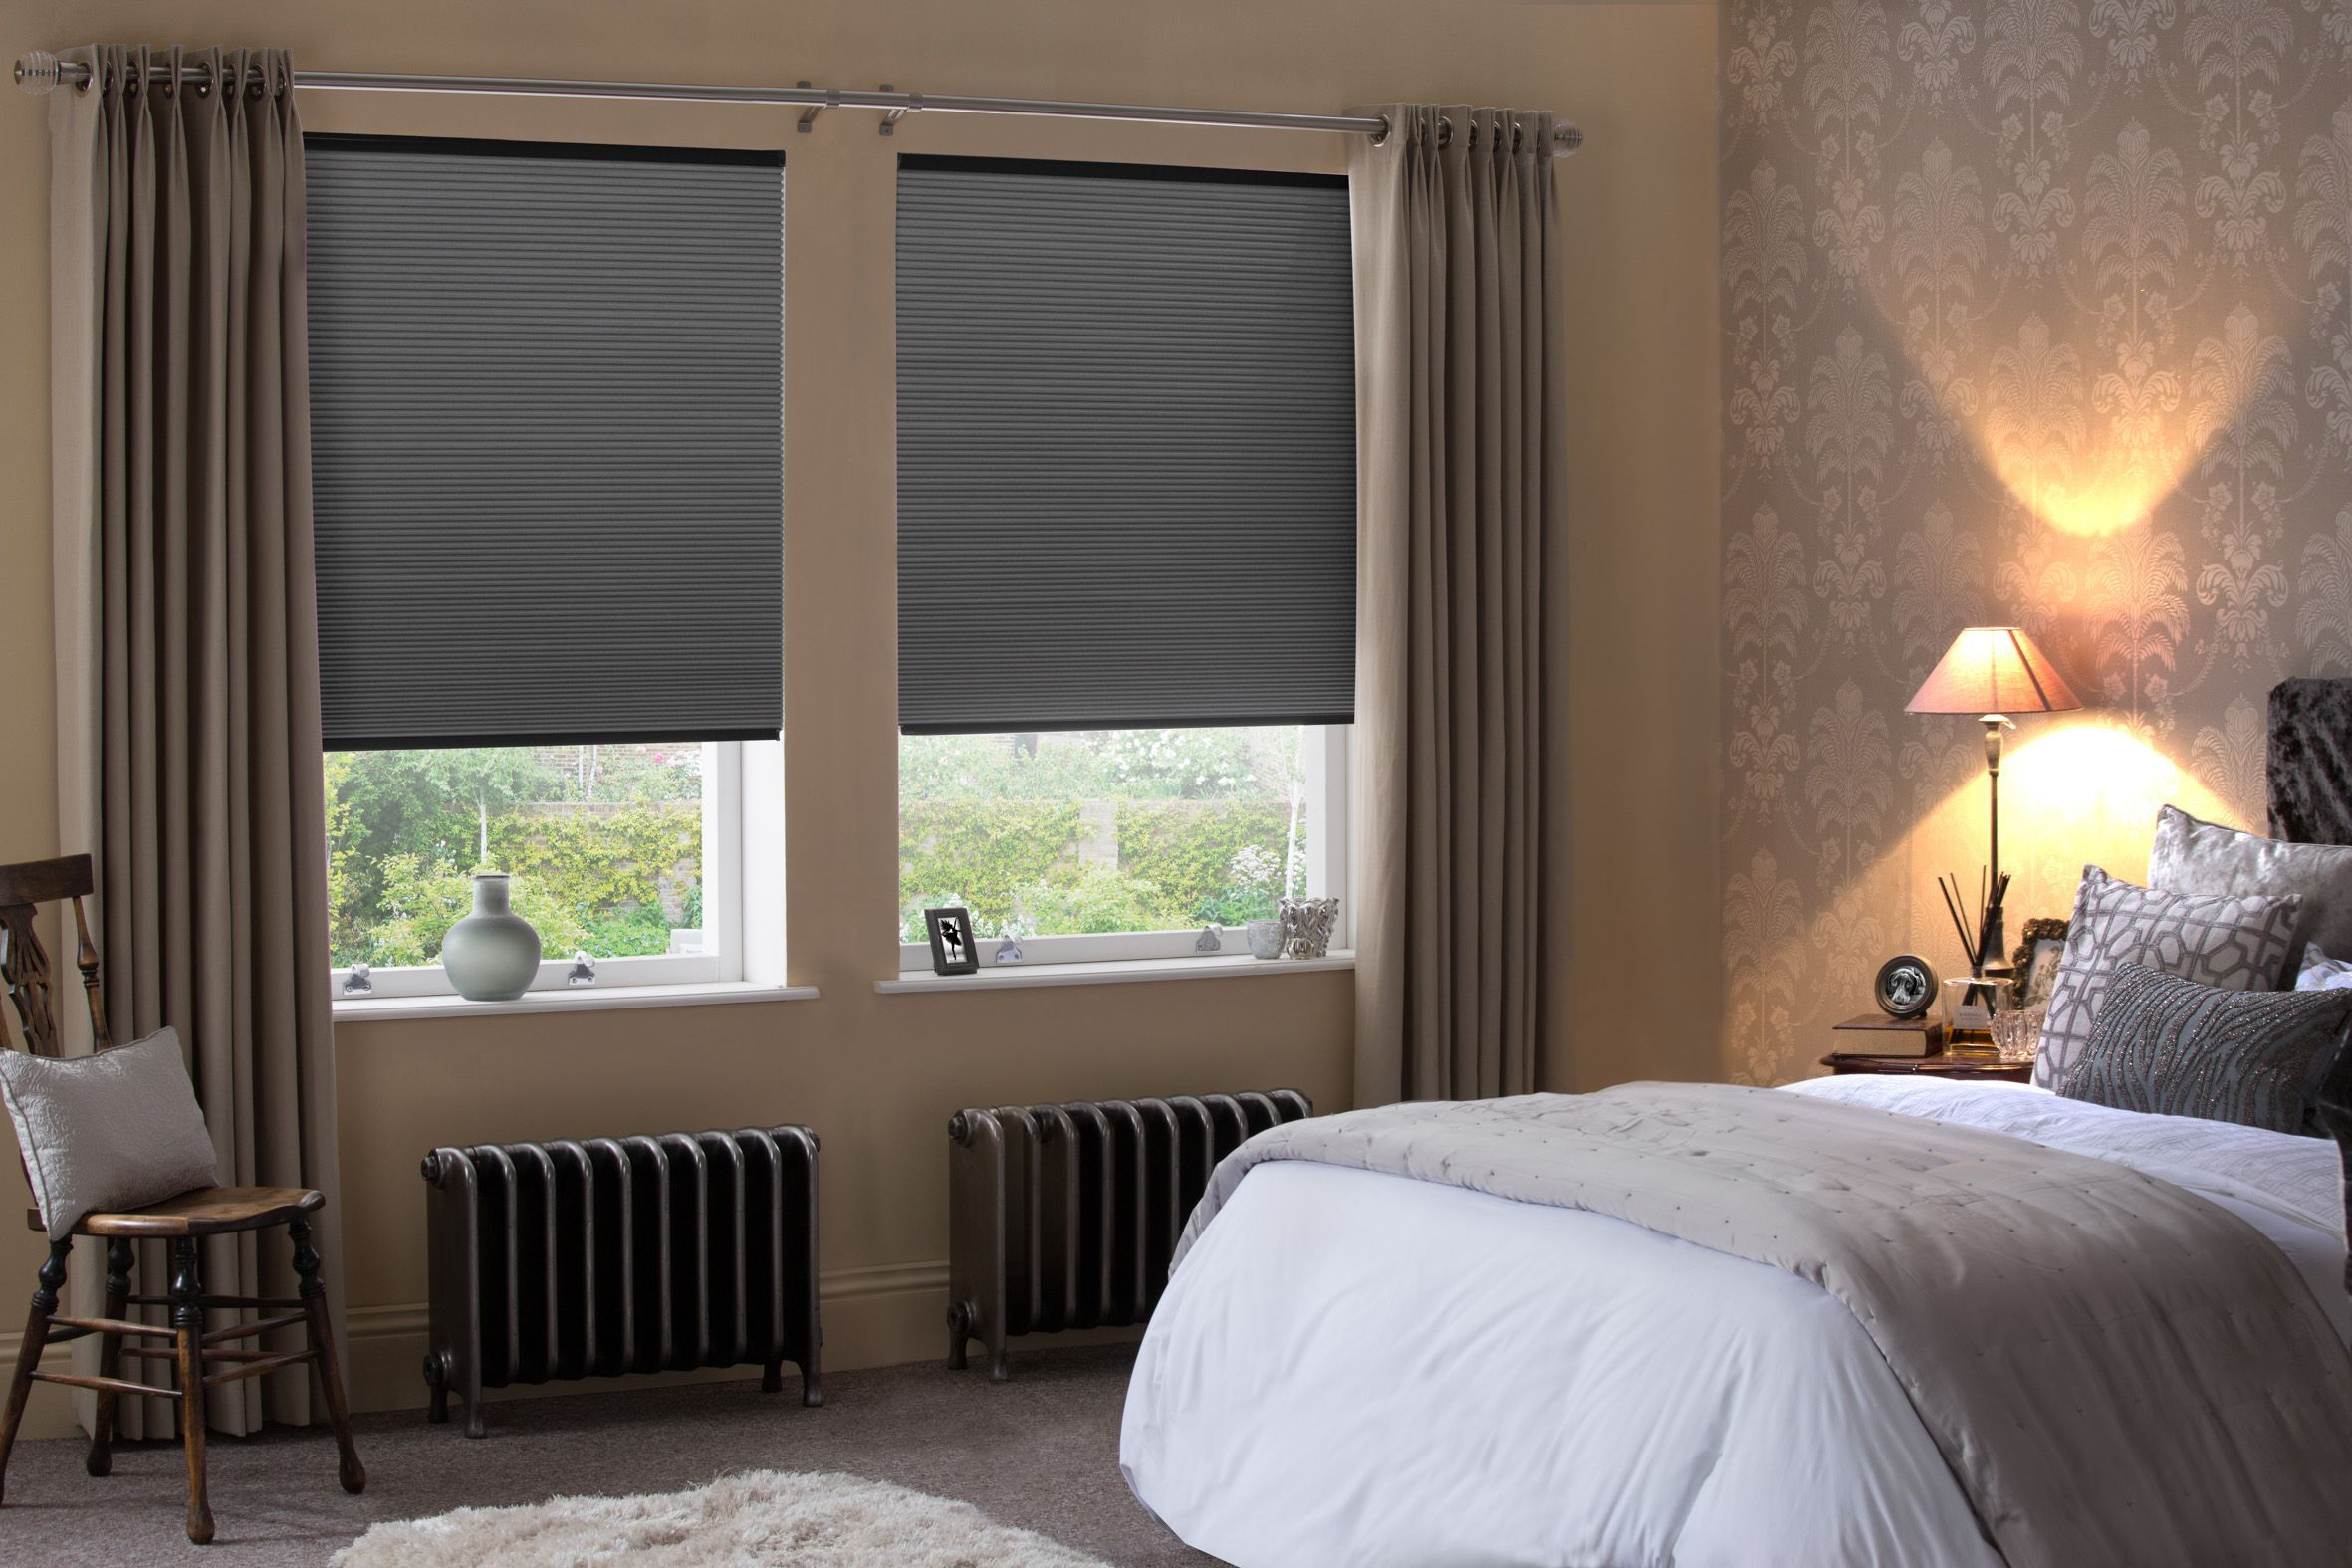 Hive Blinds From Style Studio Silver Grey Bedroom Blinds Best Blinds For Summer Contemporary Gre Living Room Blinds Curtains With Blinds Grey Bedroom Blinds